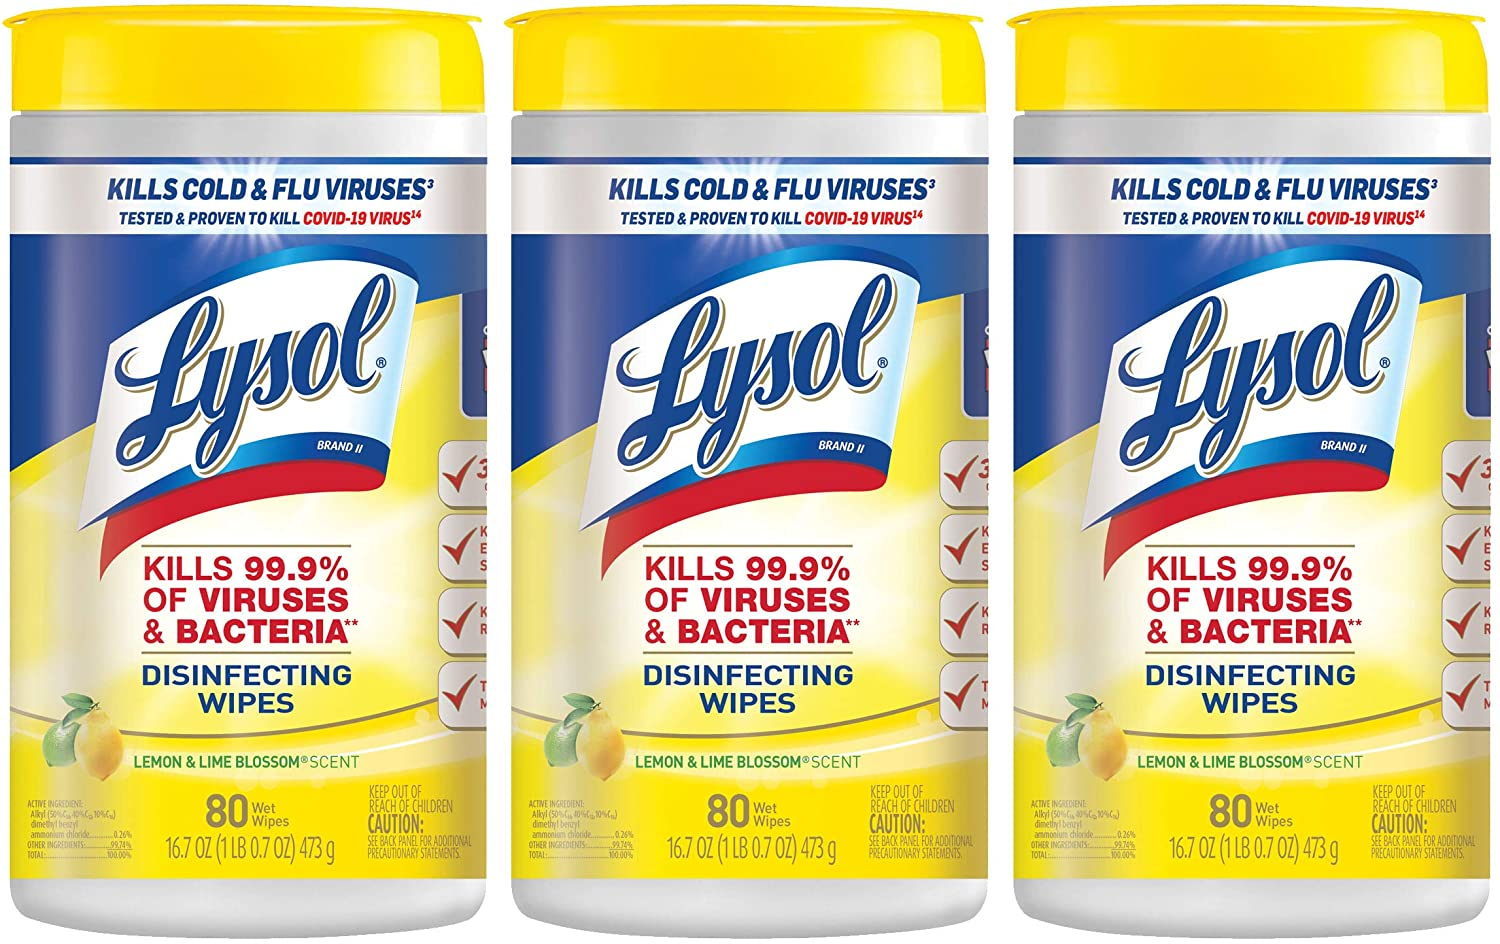 A few things to stock up on (ahem, not hoard) for cold, flu, and COVID season: Lysol wipes | Amazon